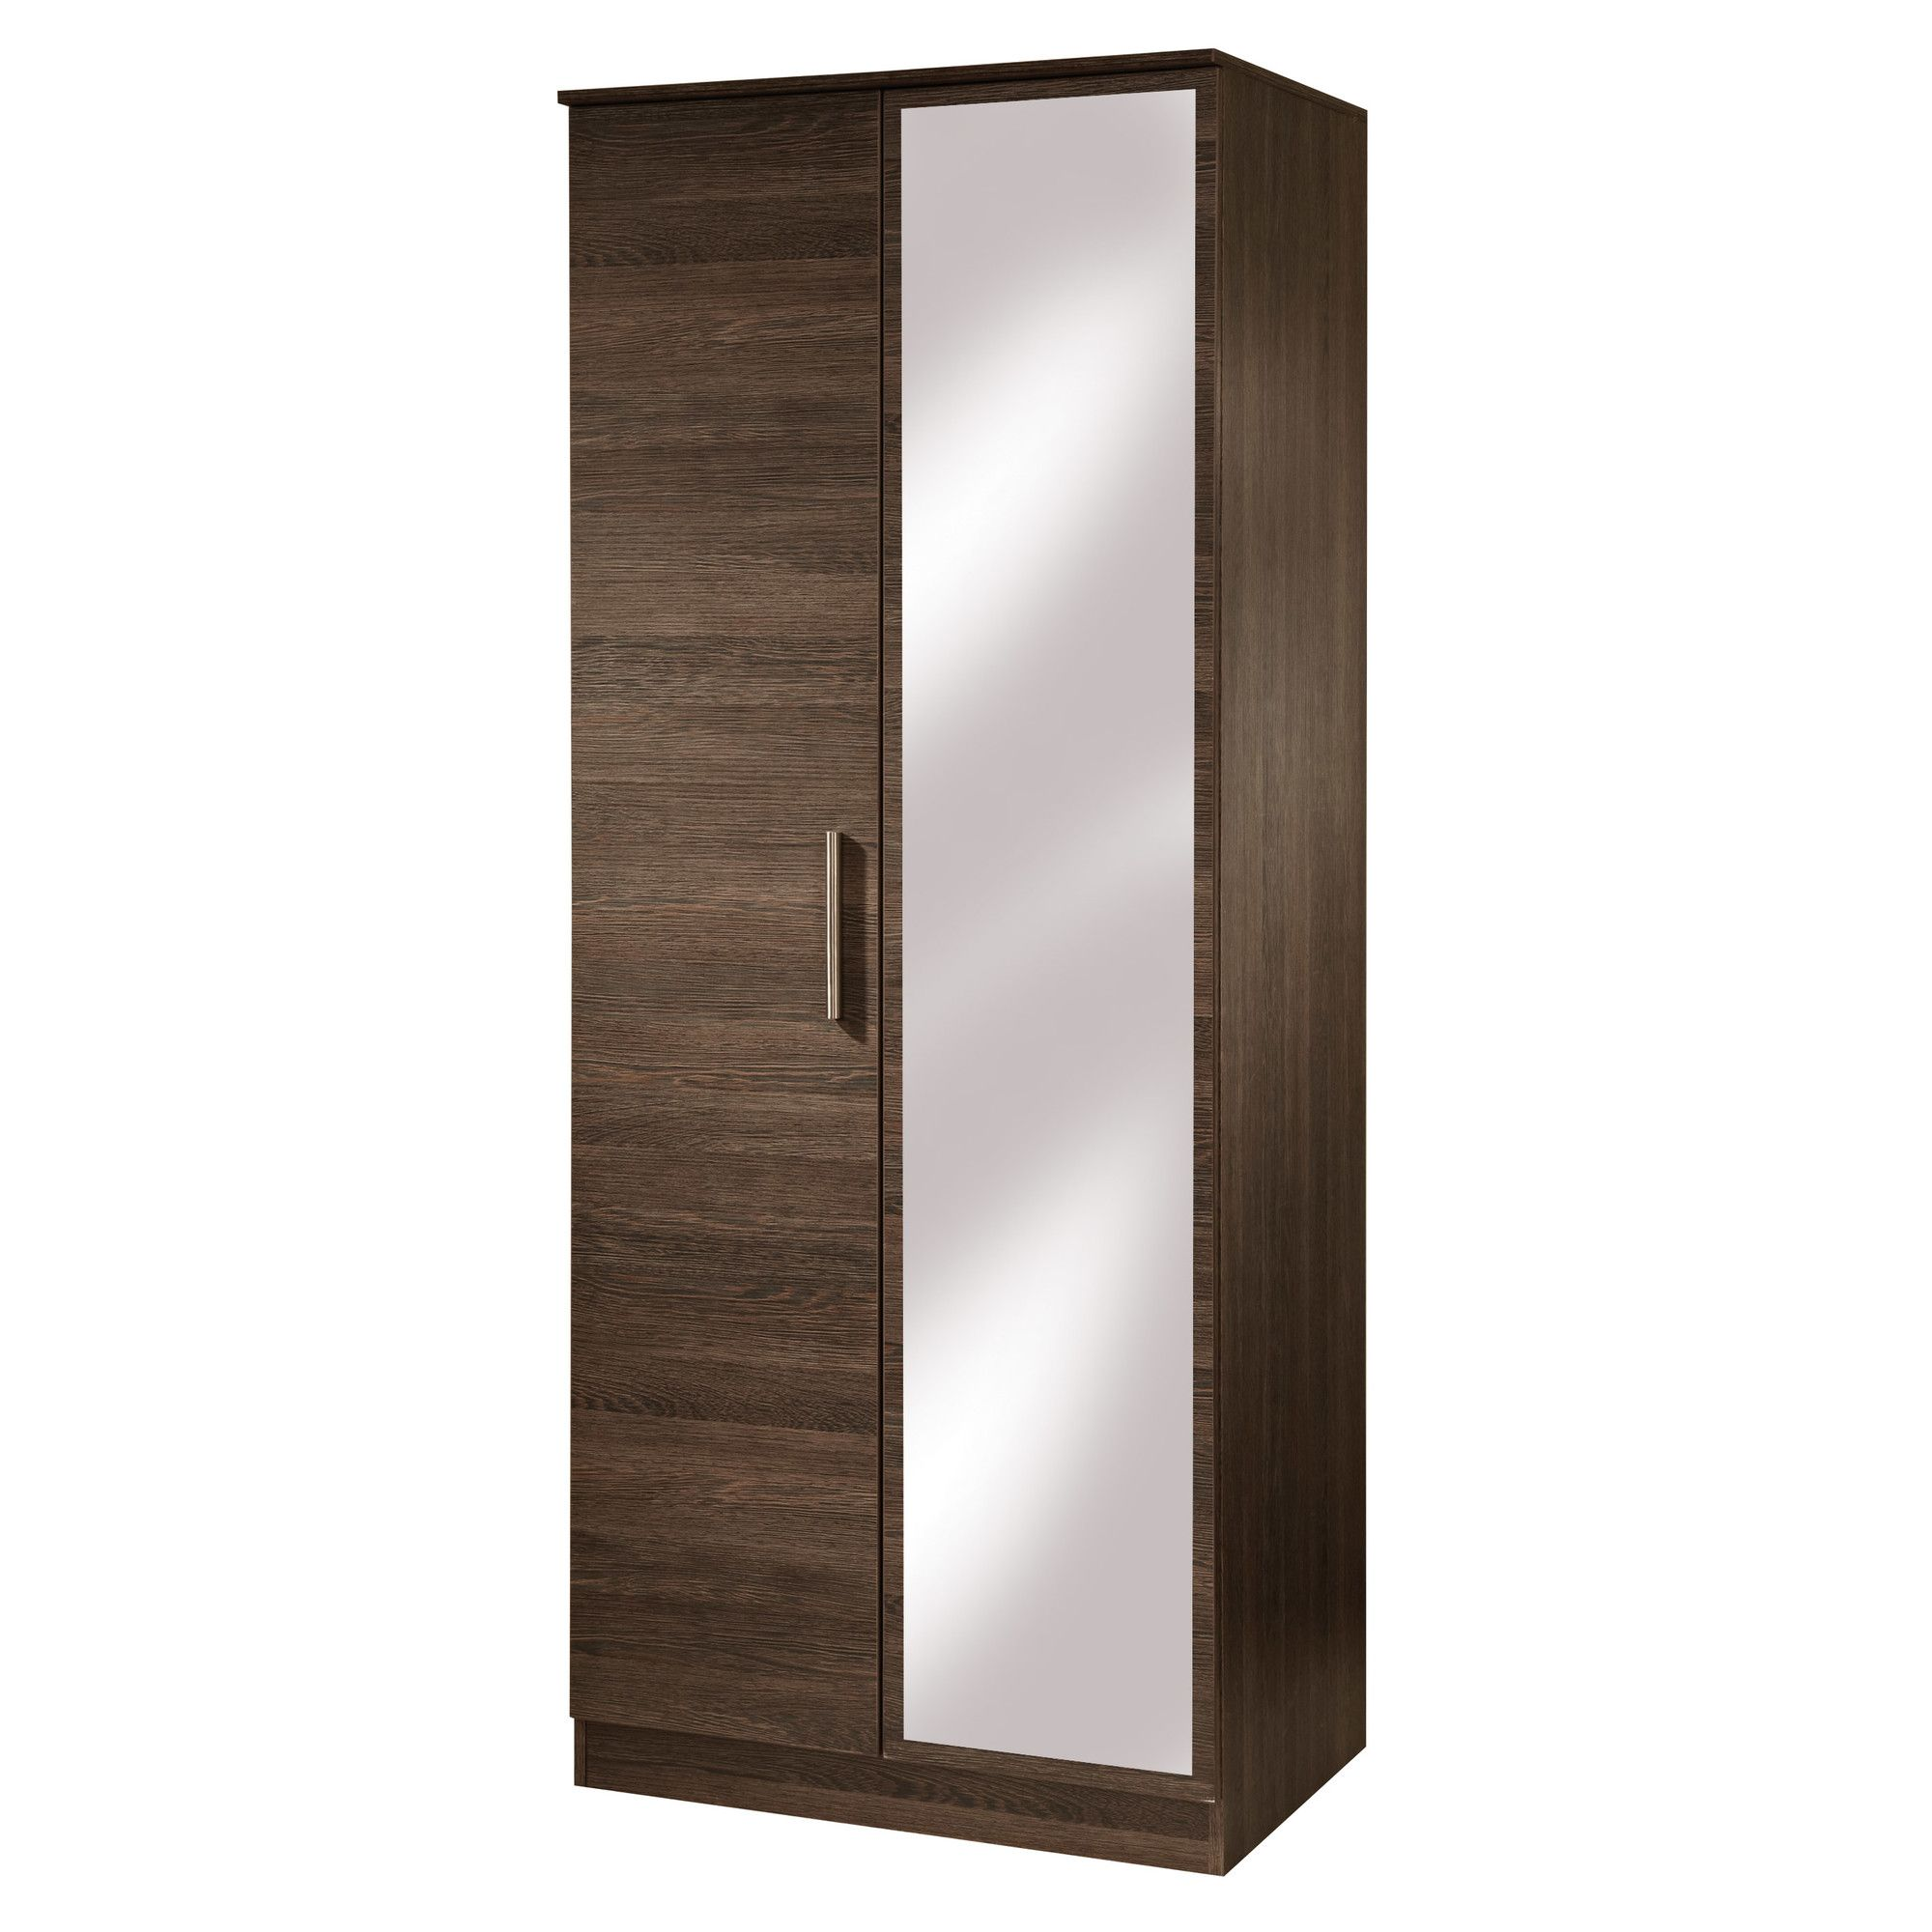 Welcome Furniture Contrast Tall Mirror Wardrobe - Vanilla at Tesco Direct